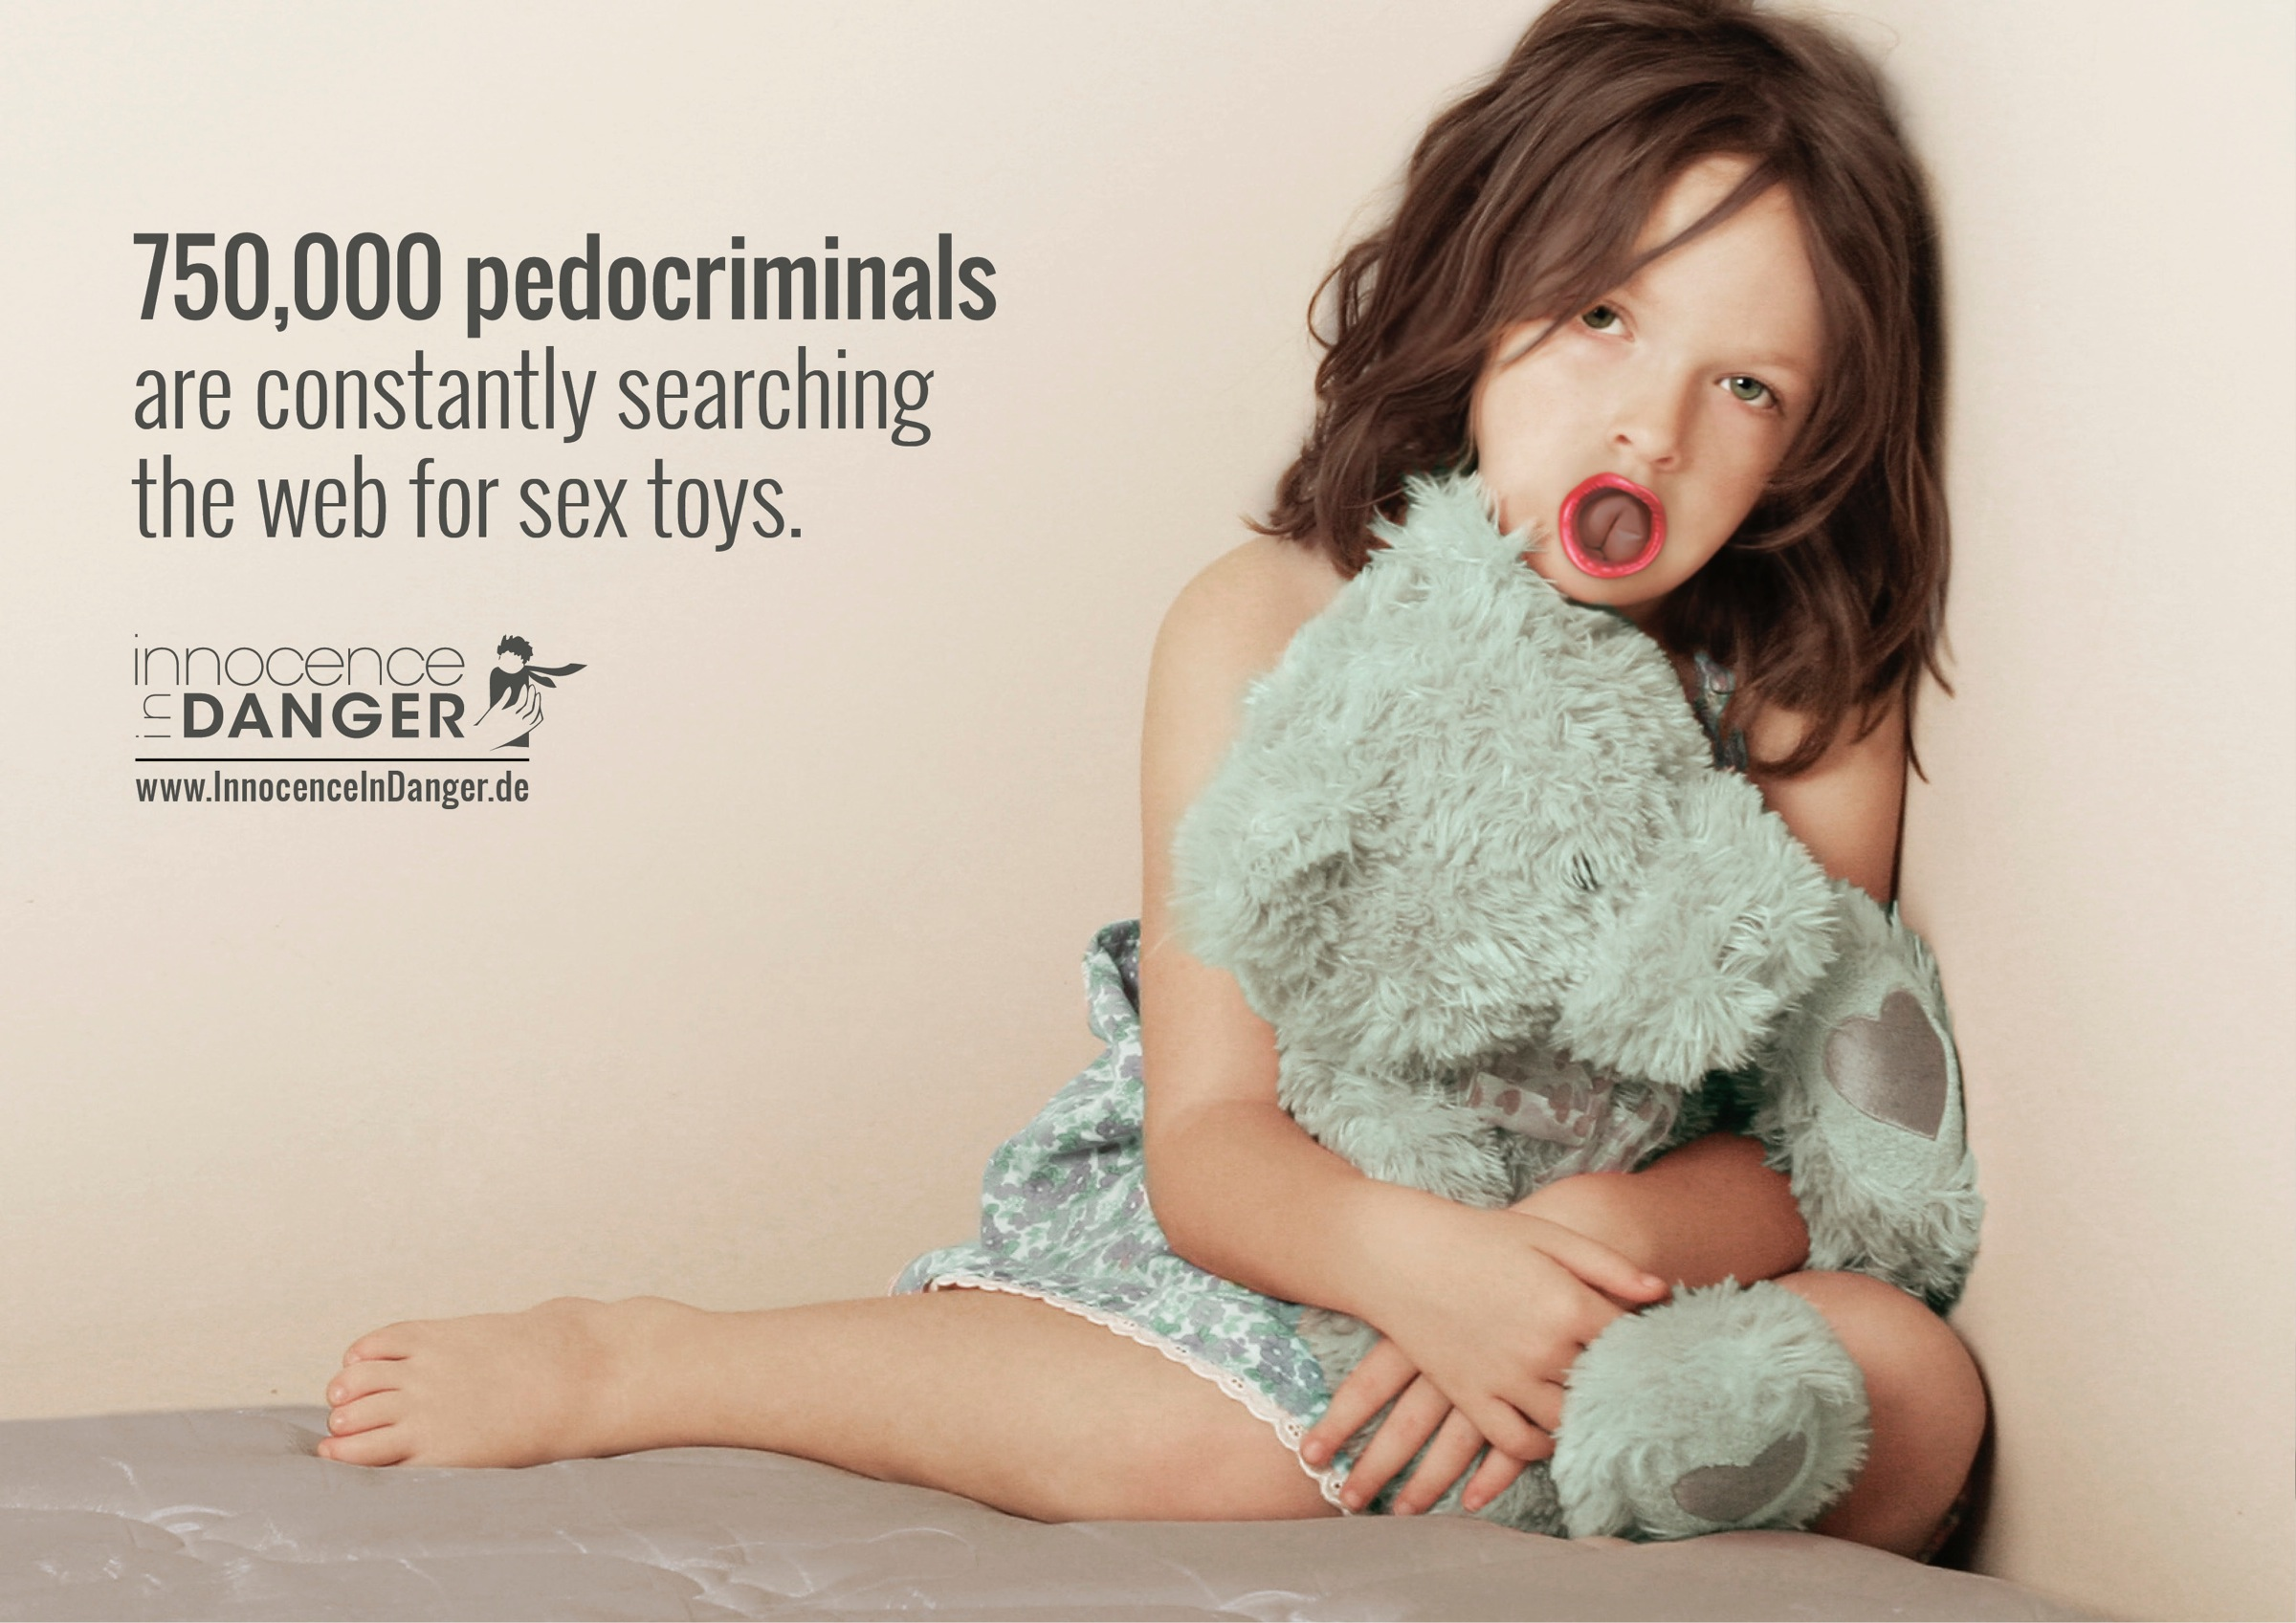 Innocence In Danger Print Advert By Glow: Sex toys, 1 | Ads of the ...